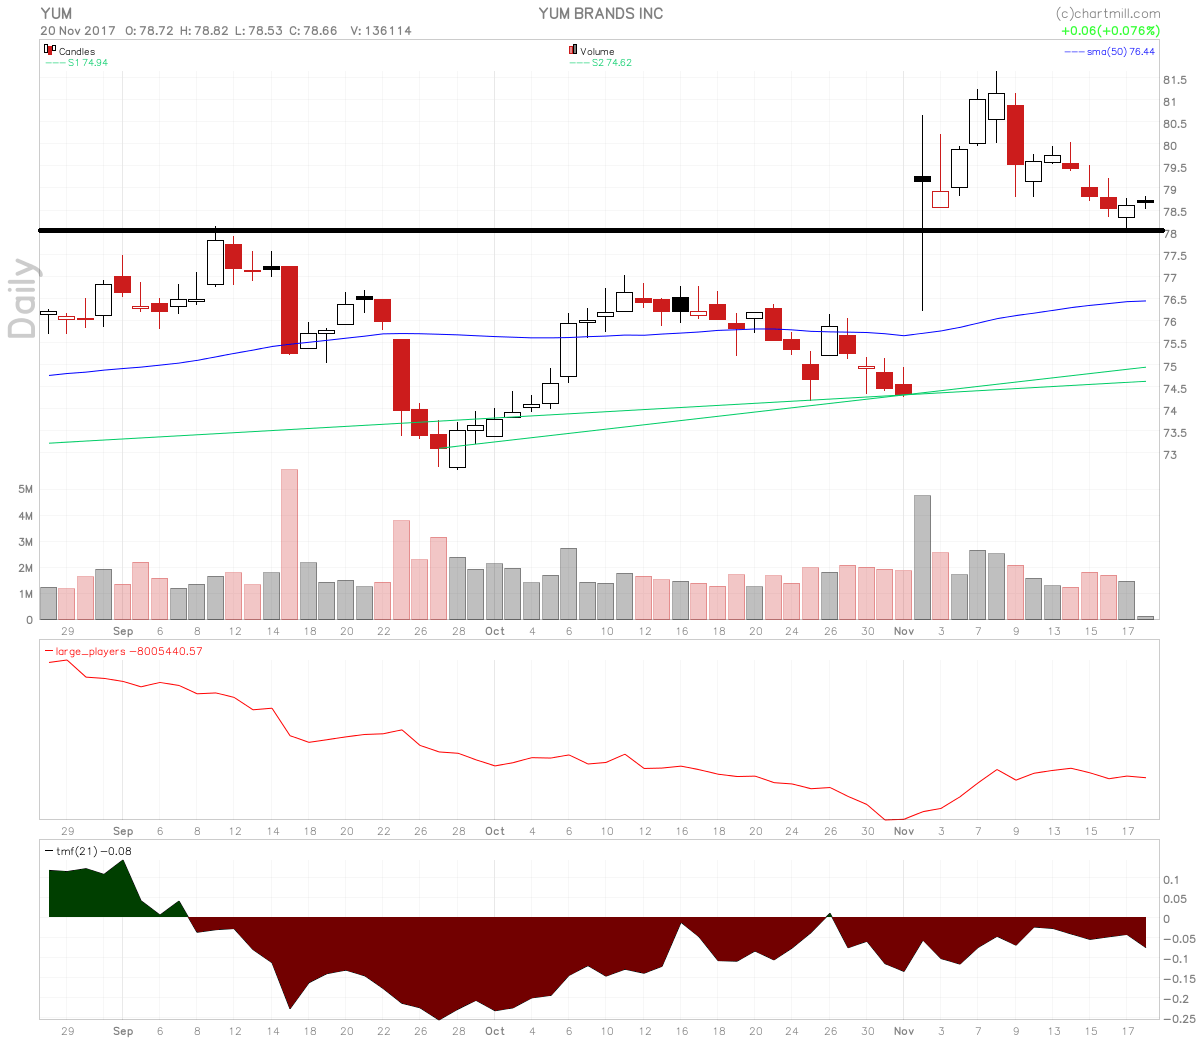 YUM Brands Stock Retracement To Previous Resistance Setup